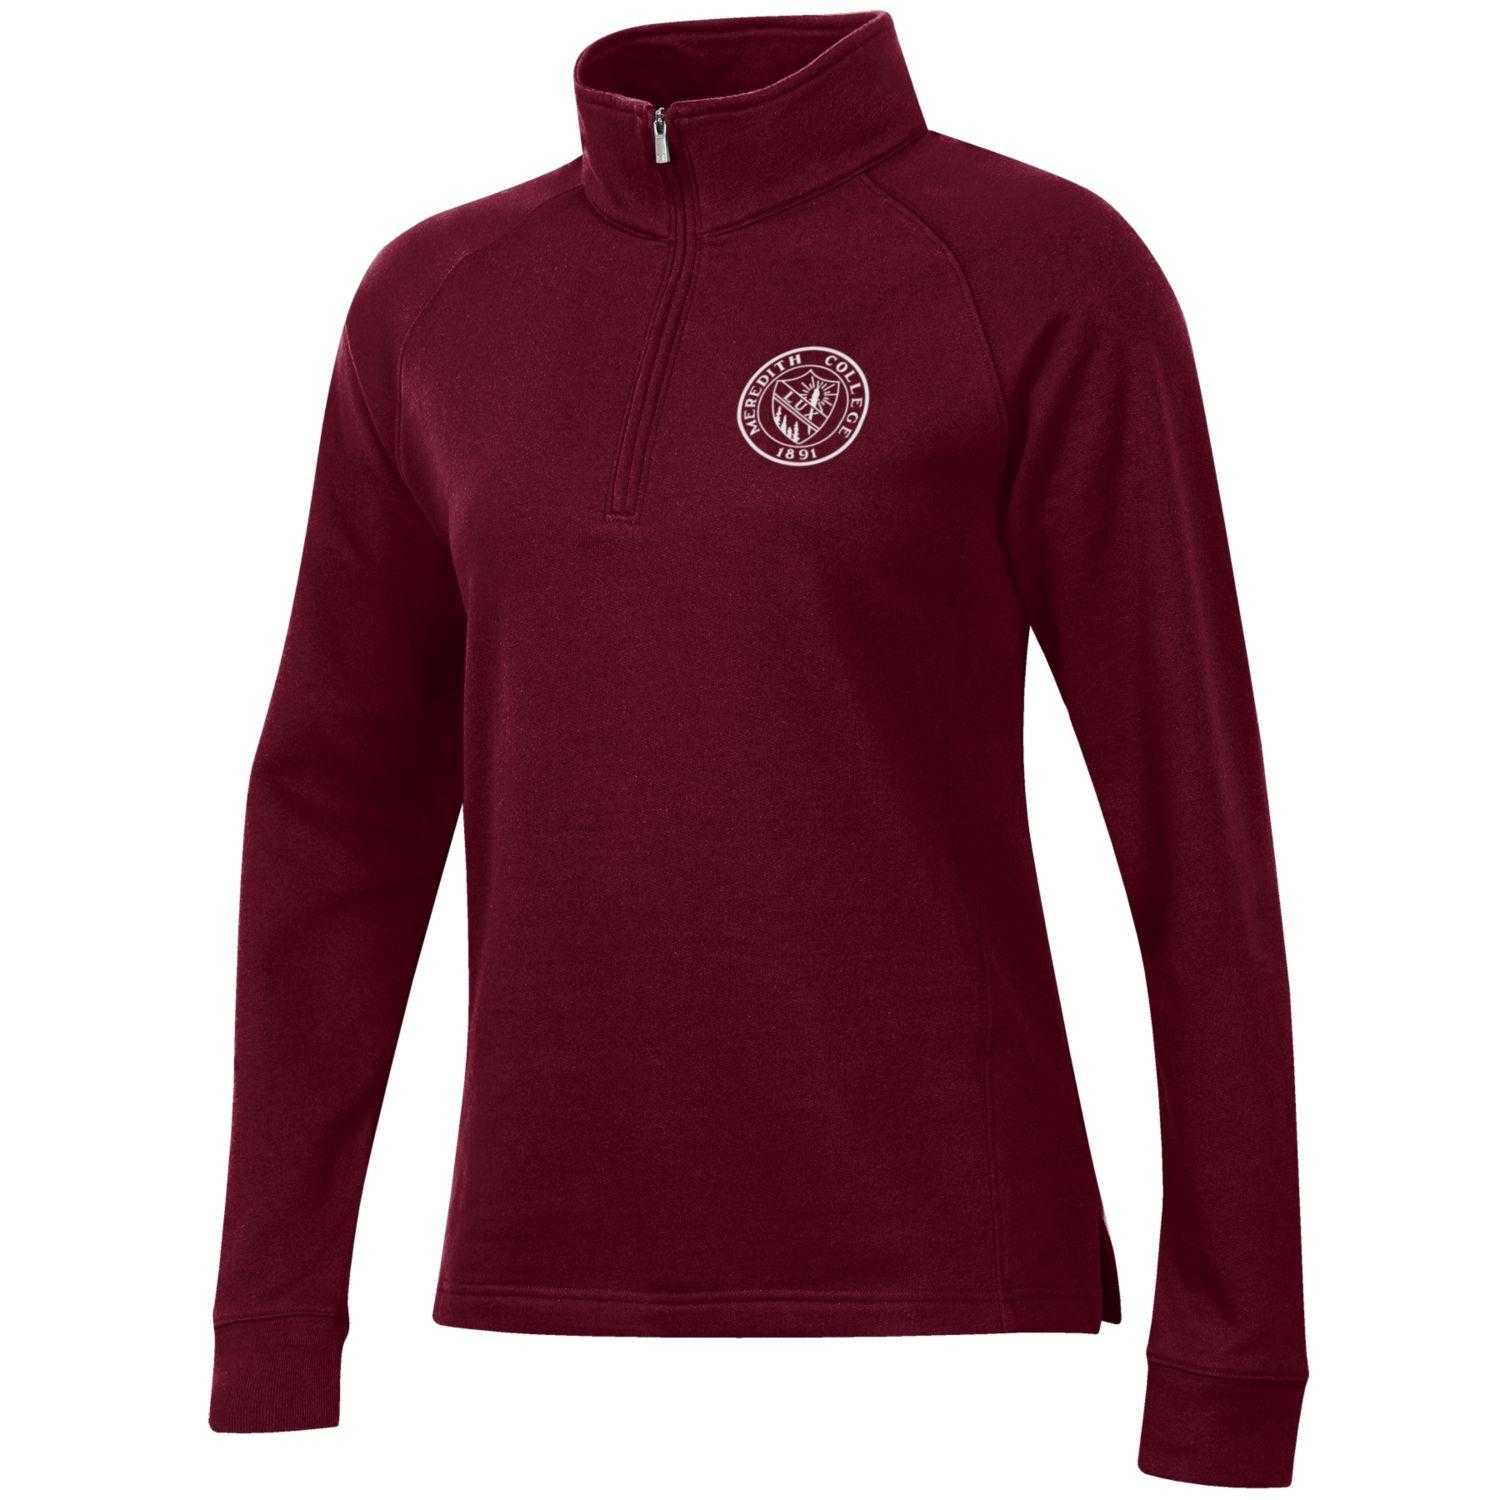 Image for the Women's Relax 1/4 Zip, Maroon product